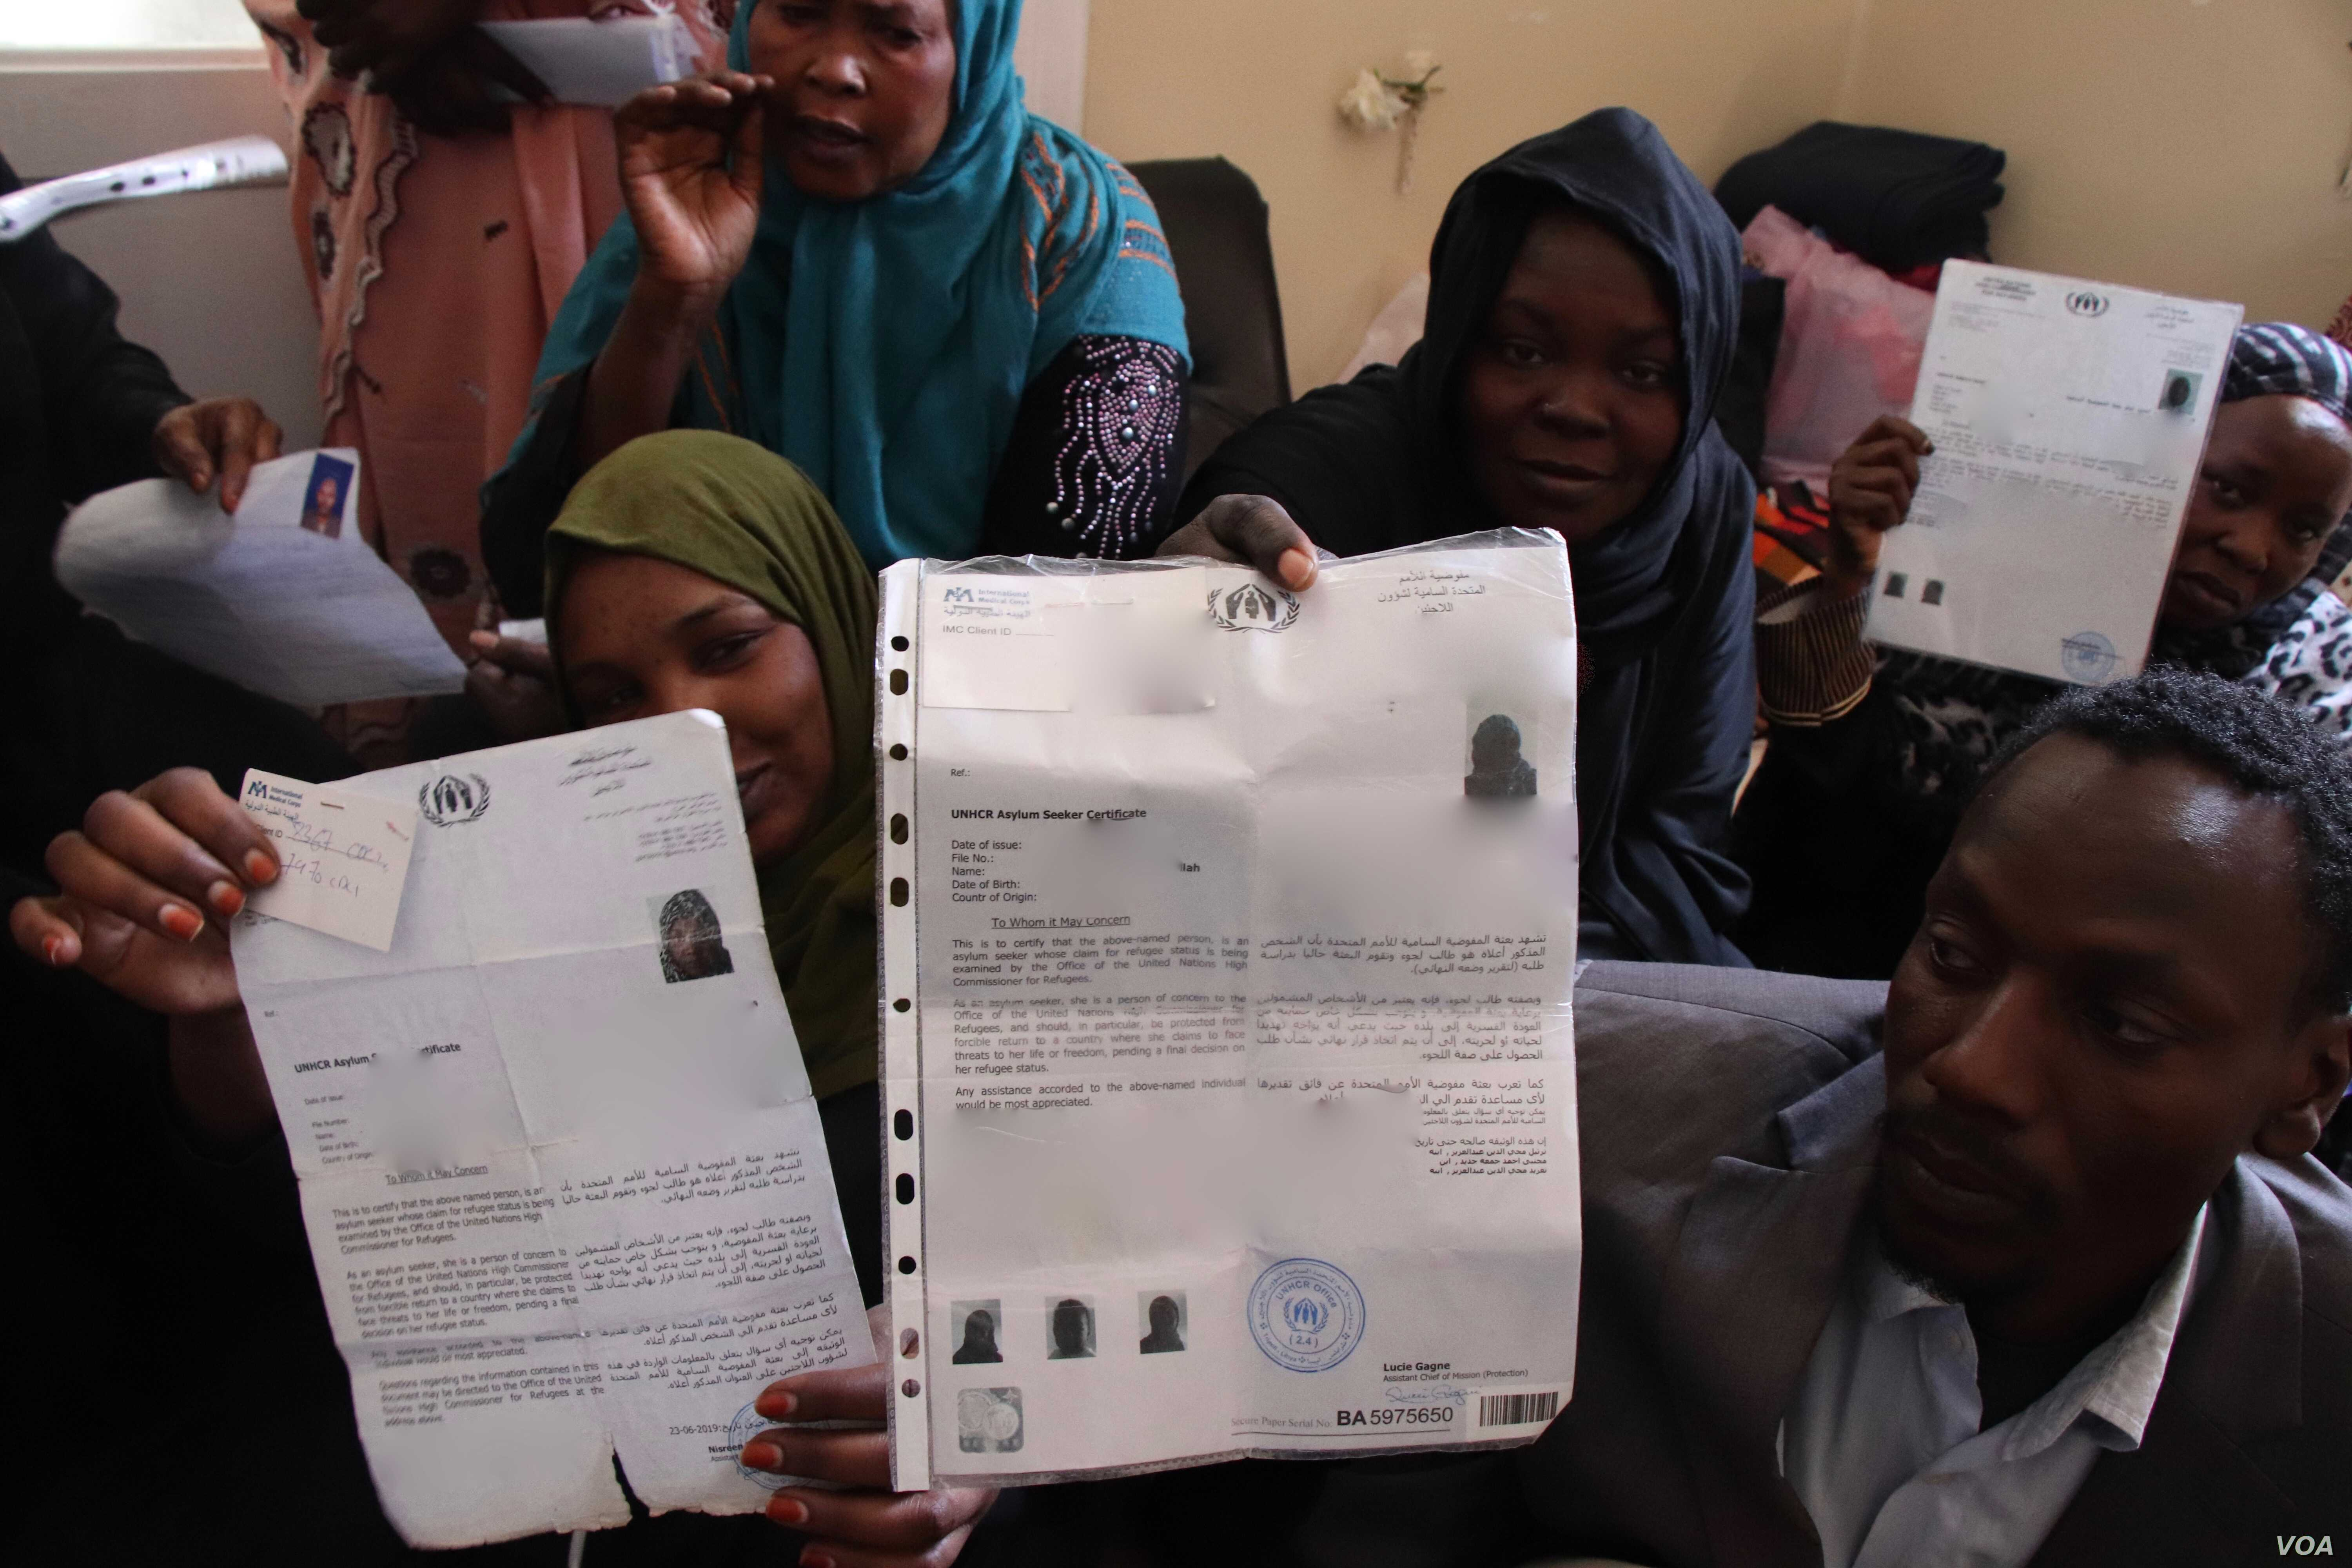 Asylum seekers from Sudan in Libya hold up documents from the United Nations, insisting that they have the right to flee their country, April 29, 2019. (H.Murdock/VOA)